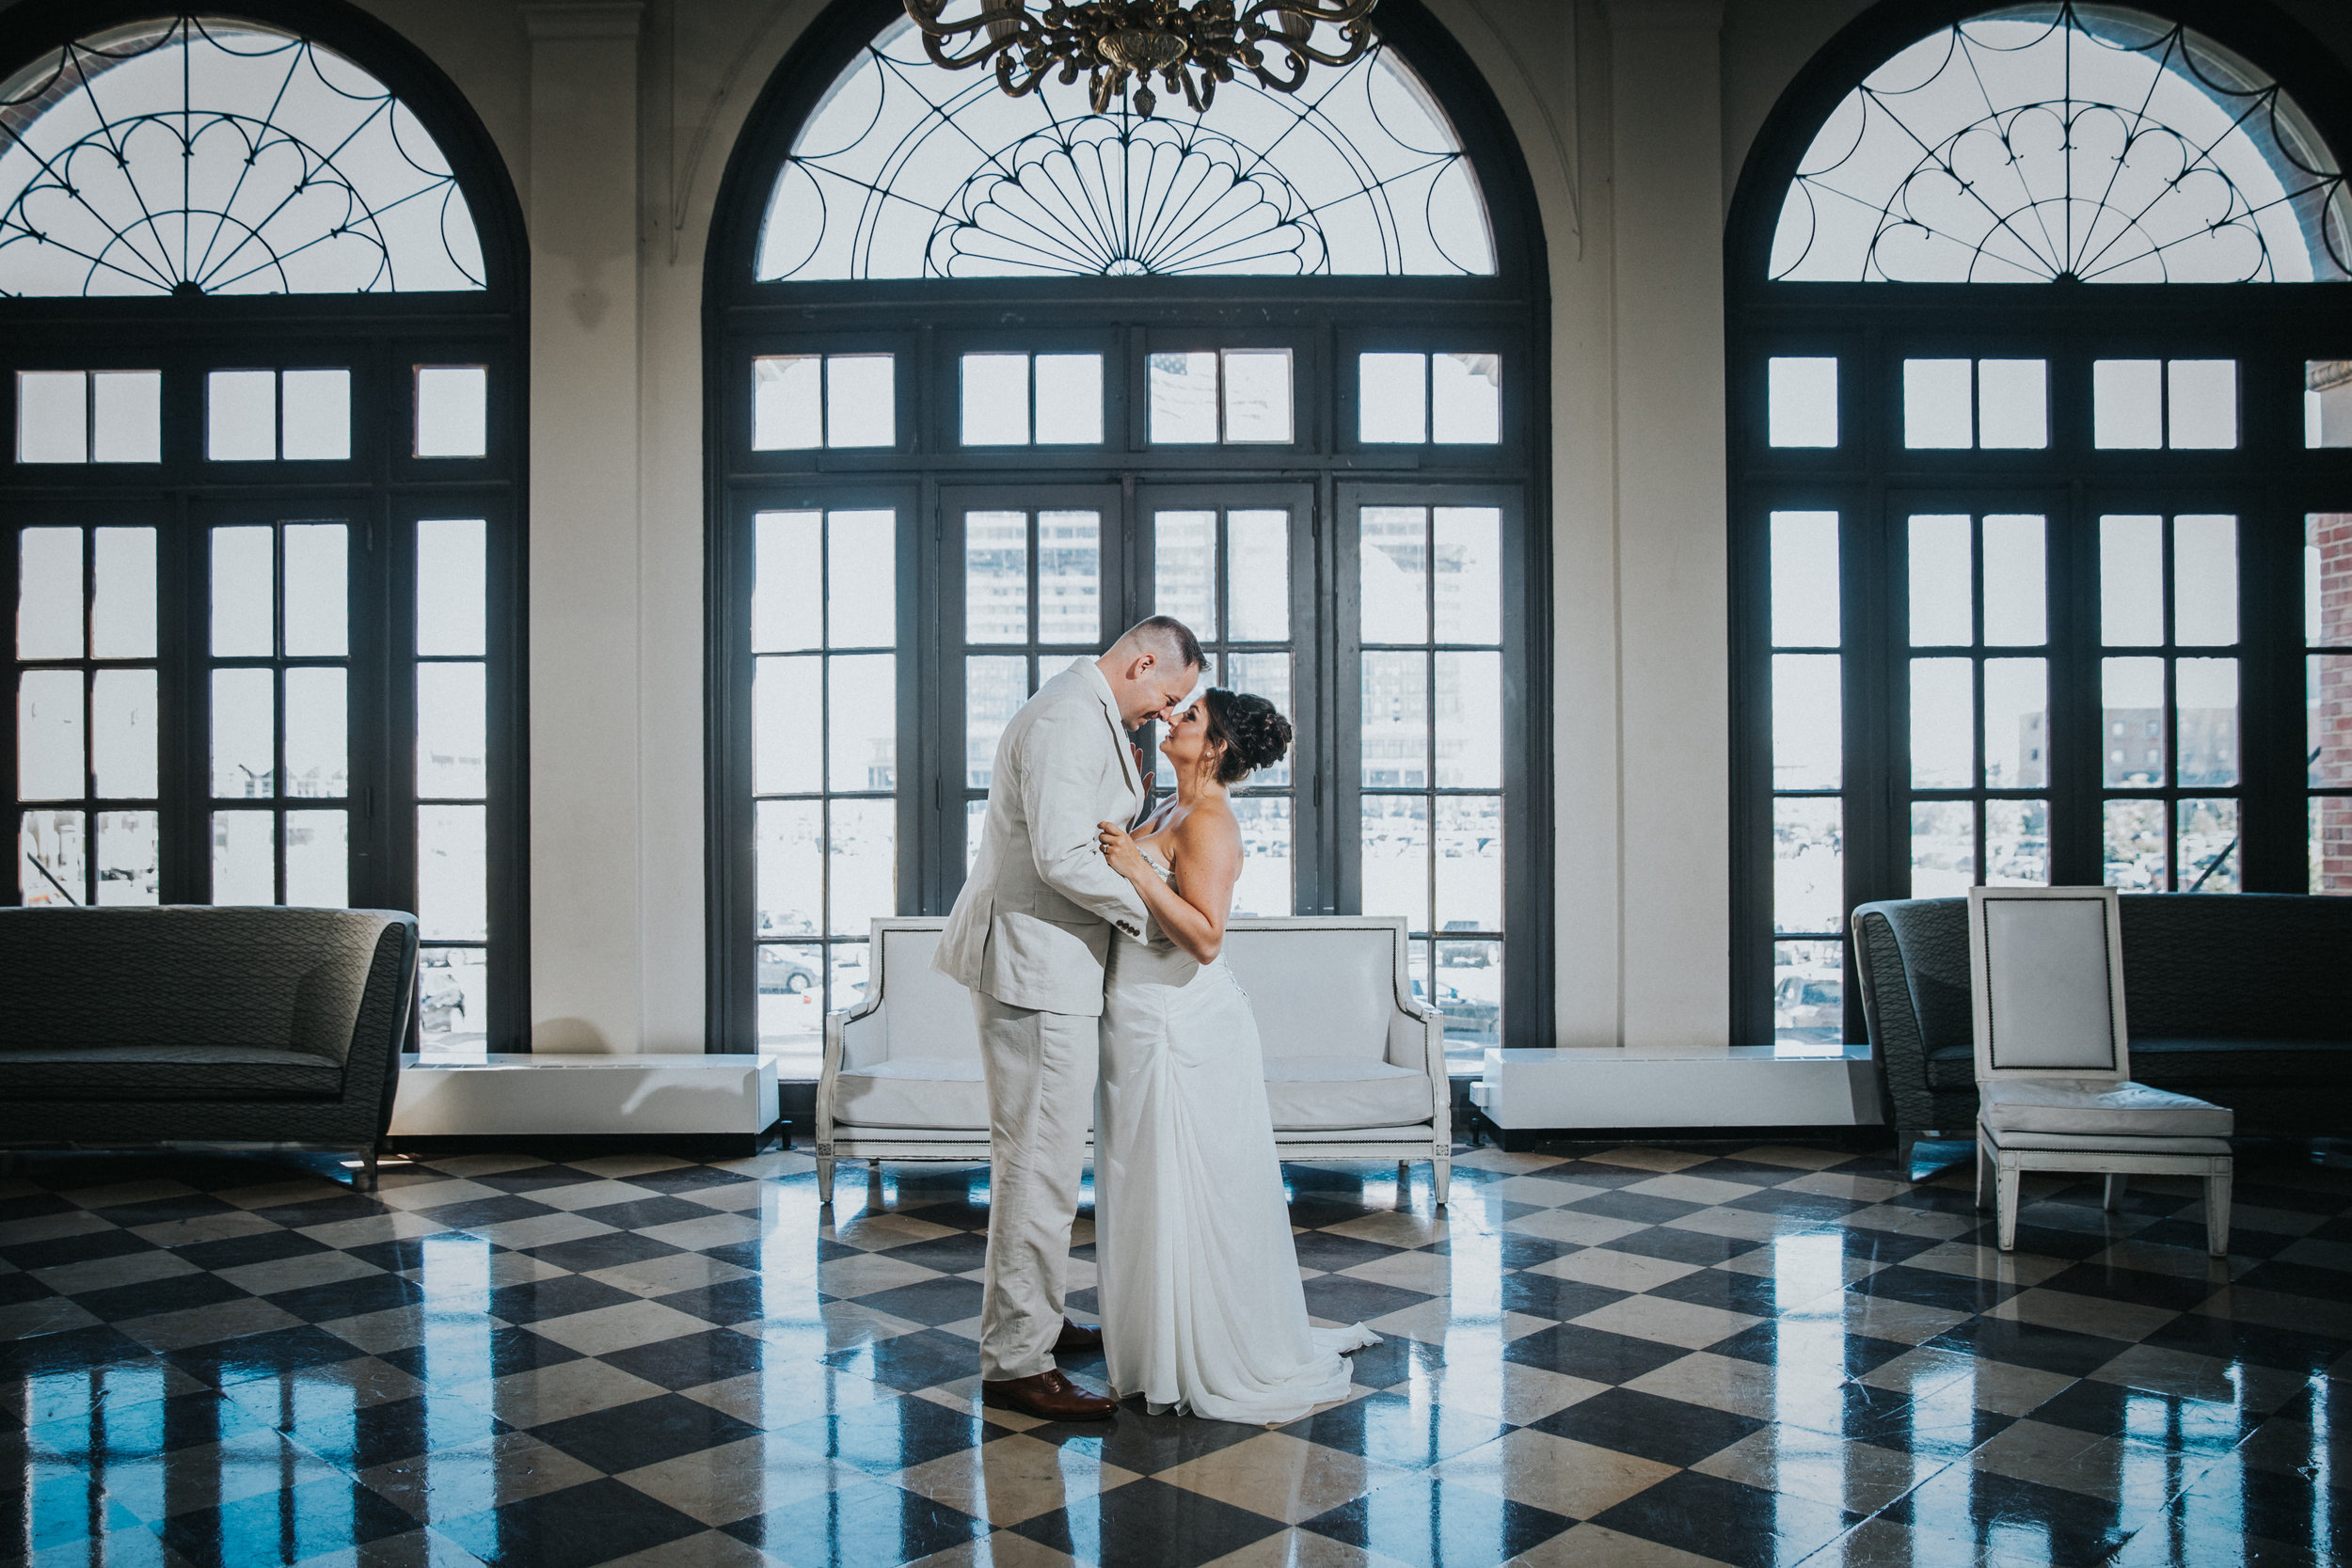 JennaLynnPhotography-NJWeddingPhotographer-Wedding-TheBerkeley-AsburyPark-Allison&Michael-Bride&Groom-22.jpg